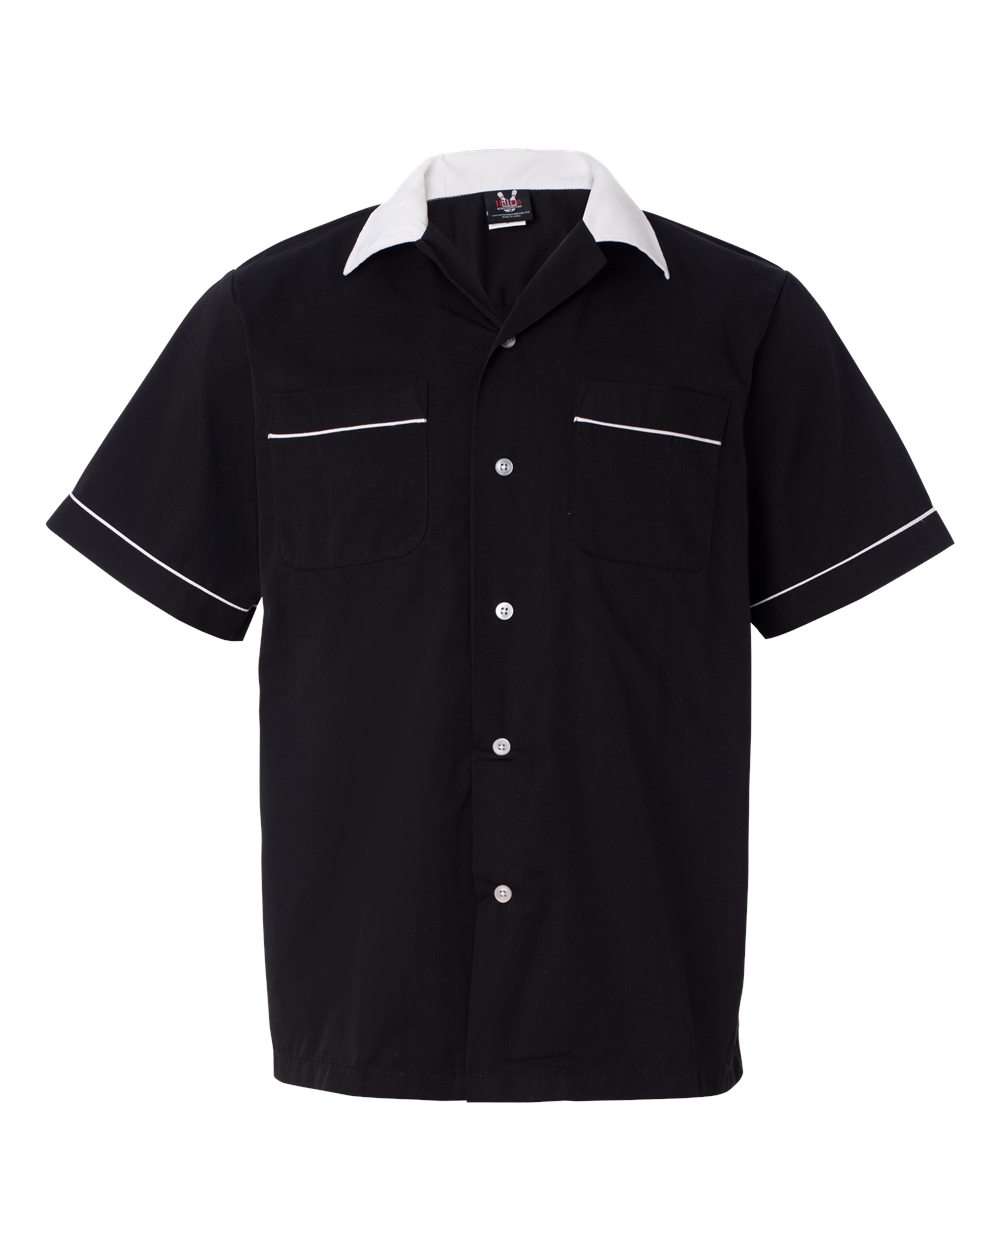 1950s Mens Shirts | Retro Bowling Shirts, Vintage Hawaiian Shirts Classic Bowler 2.0 Bowling Shirt - Black  White $39.95 AT vintagedancer.com